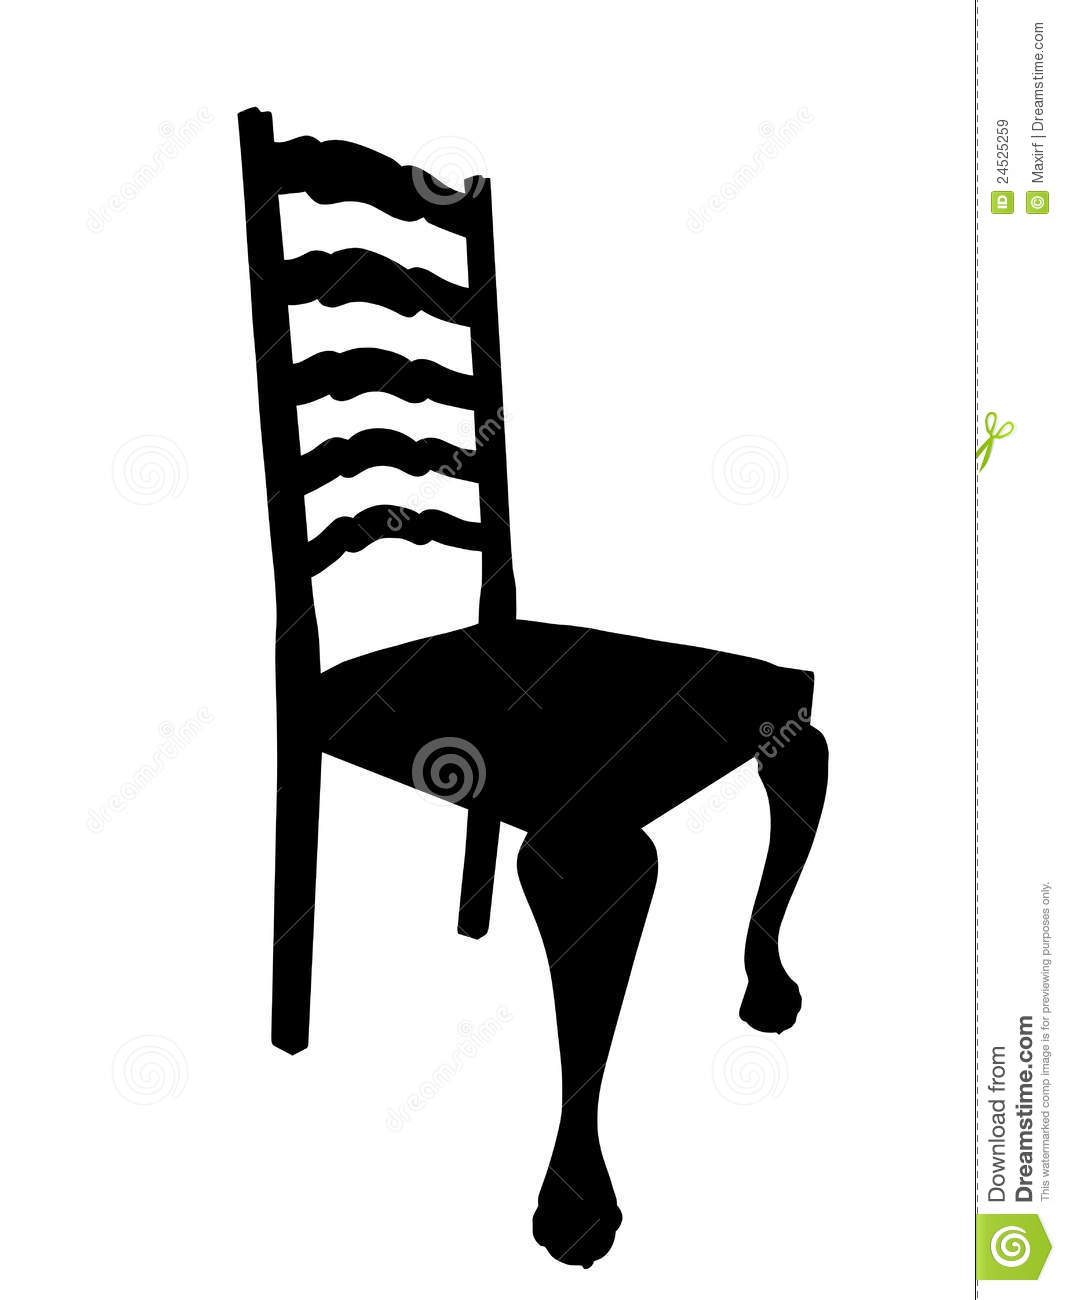 Antique Dining Table Chair Silhouette Isolation Royalty Free Stock Image